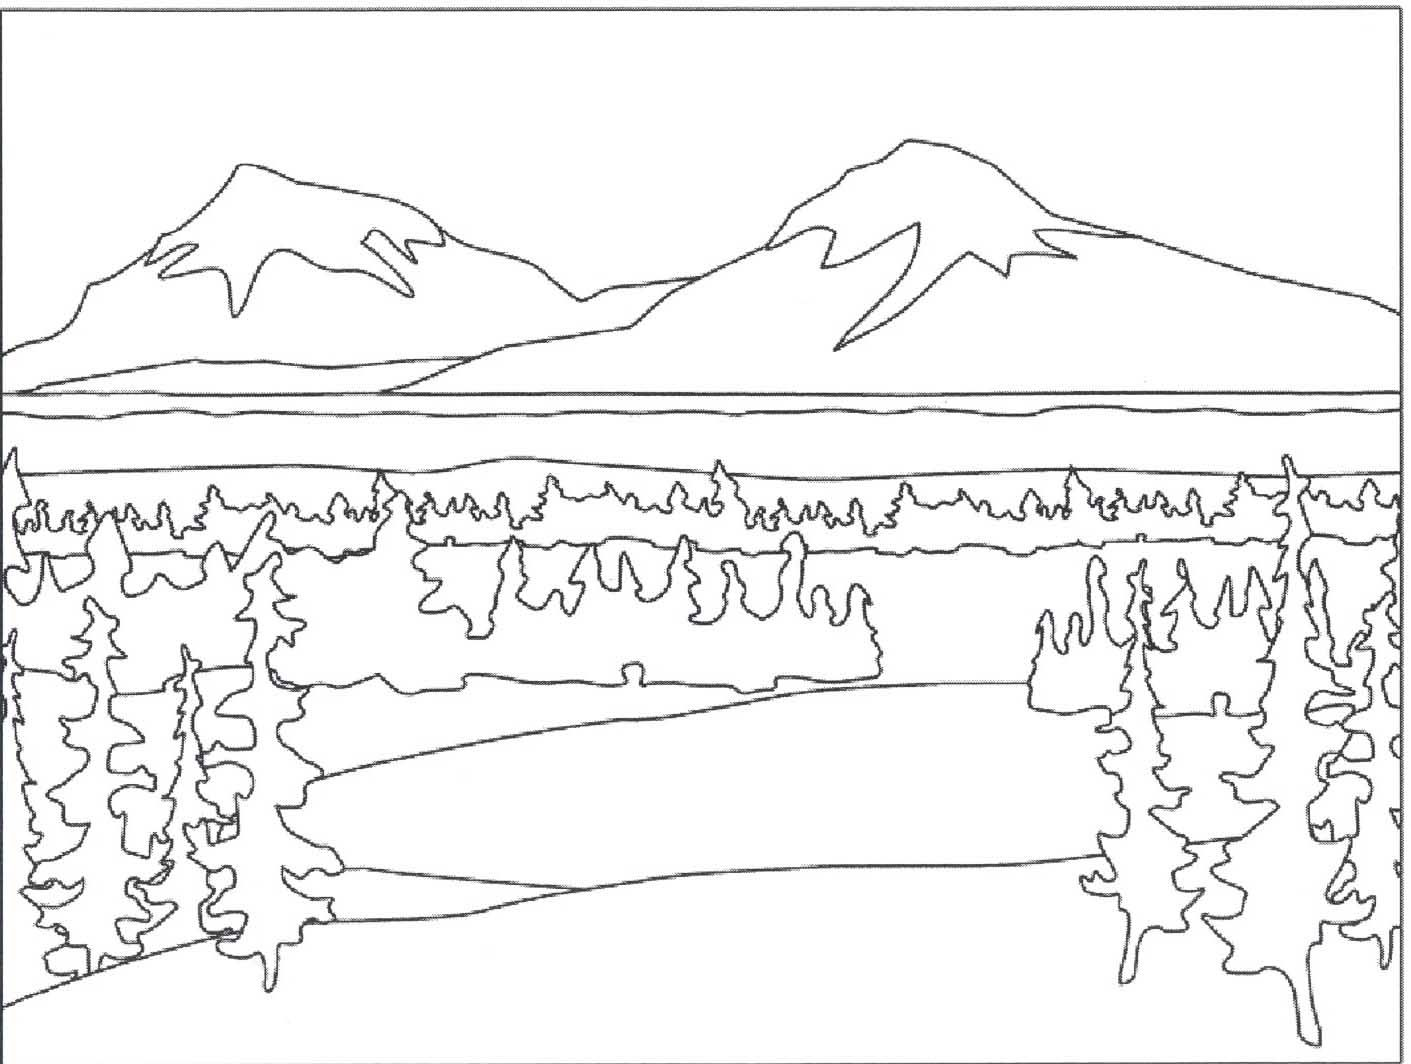 Mountain landscape coloring pages | My Nursery class | Pinterest ...